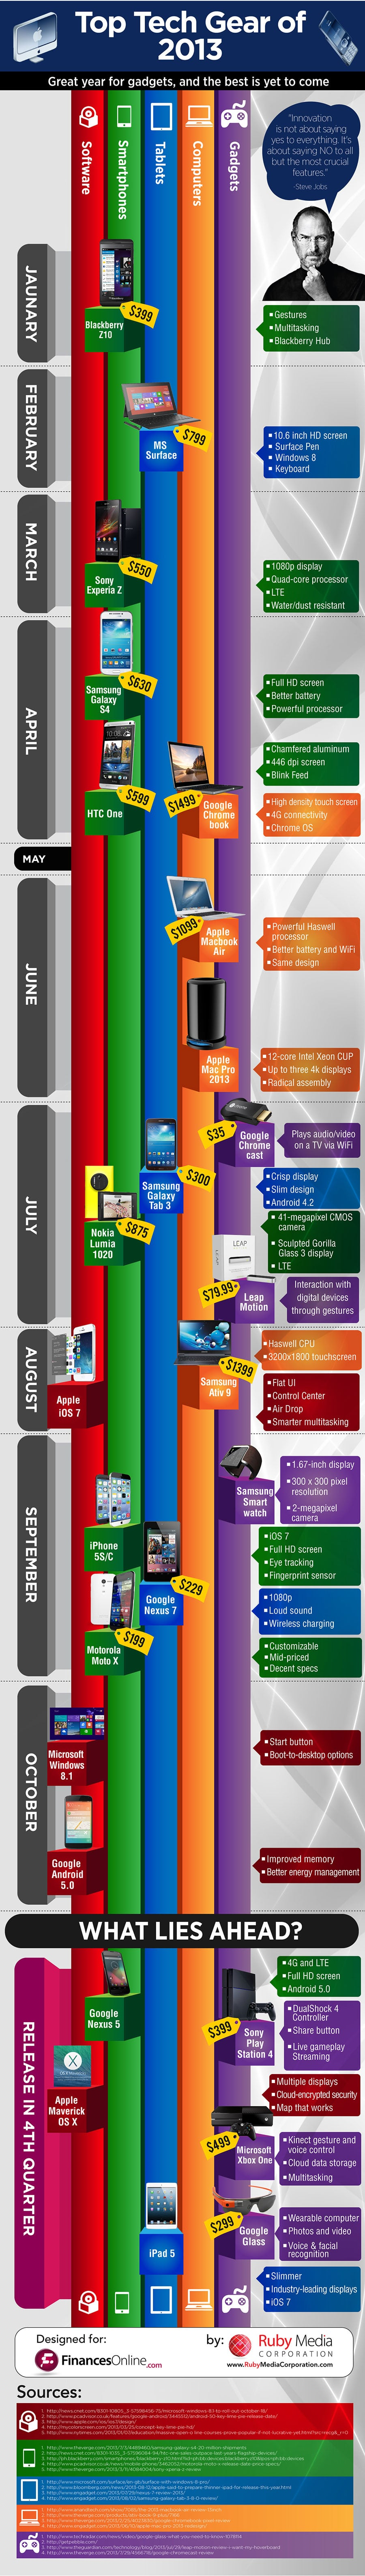 top-tech-geek-2013-infographic